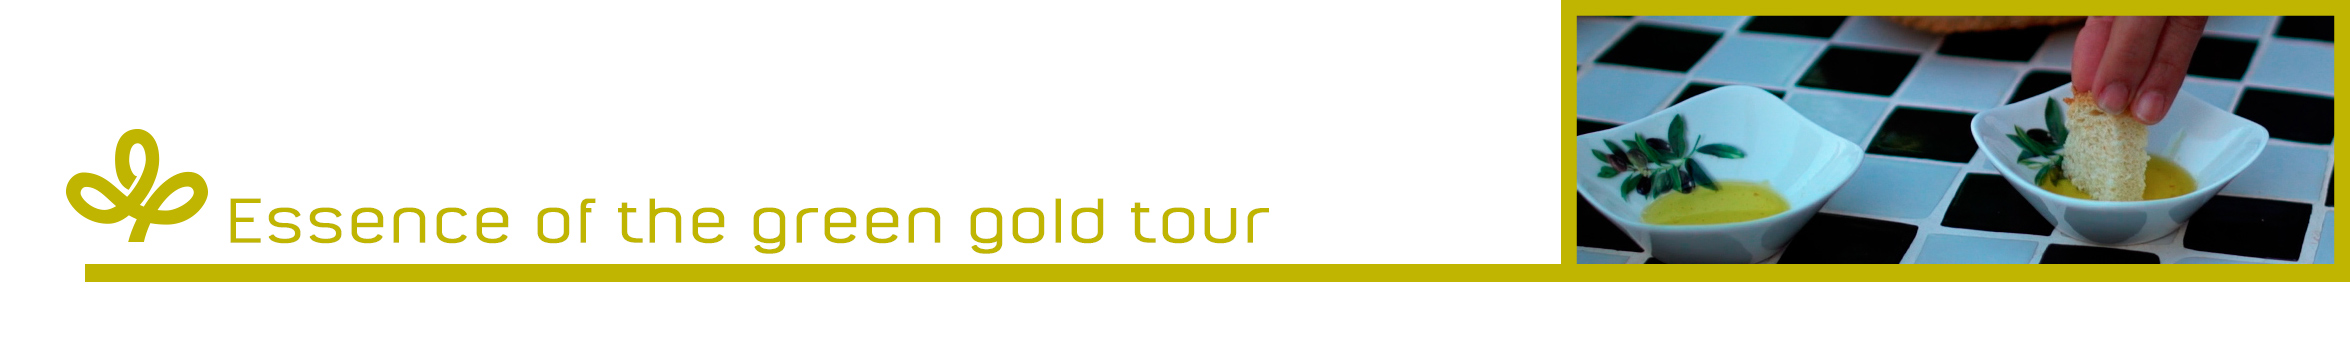 Essence of the green gold tour